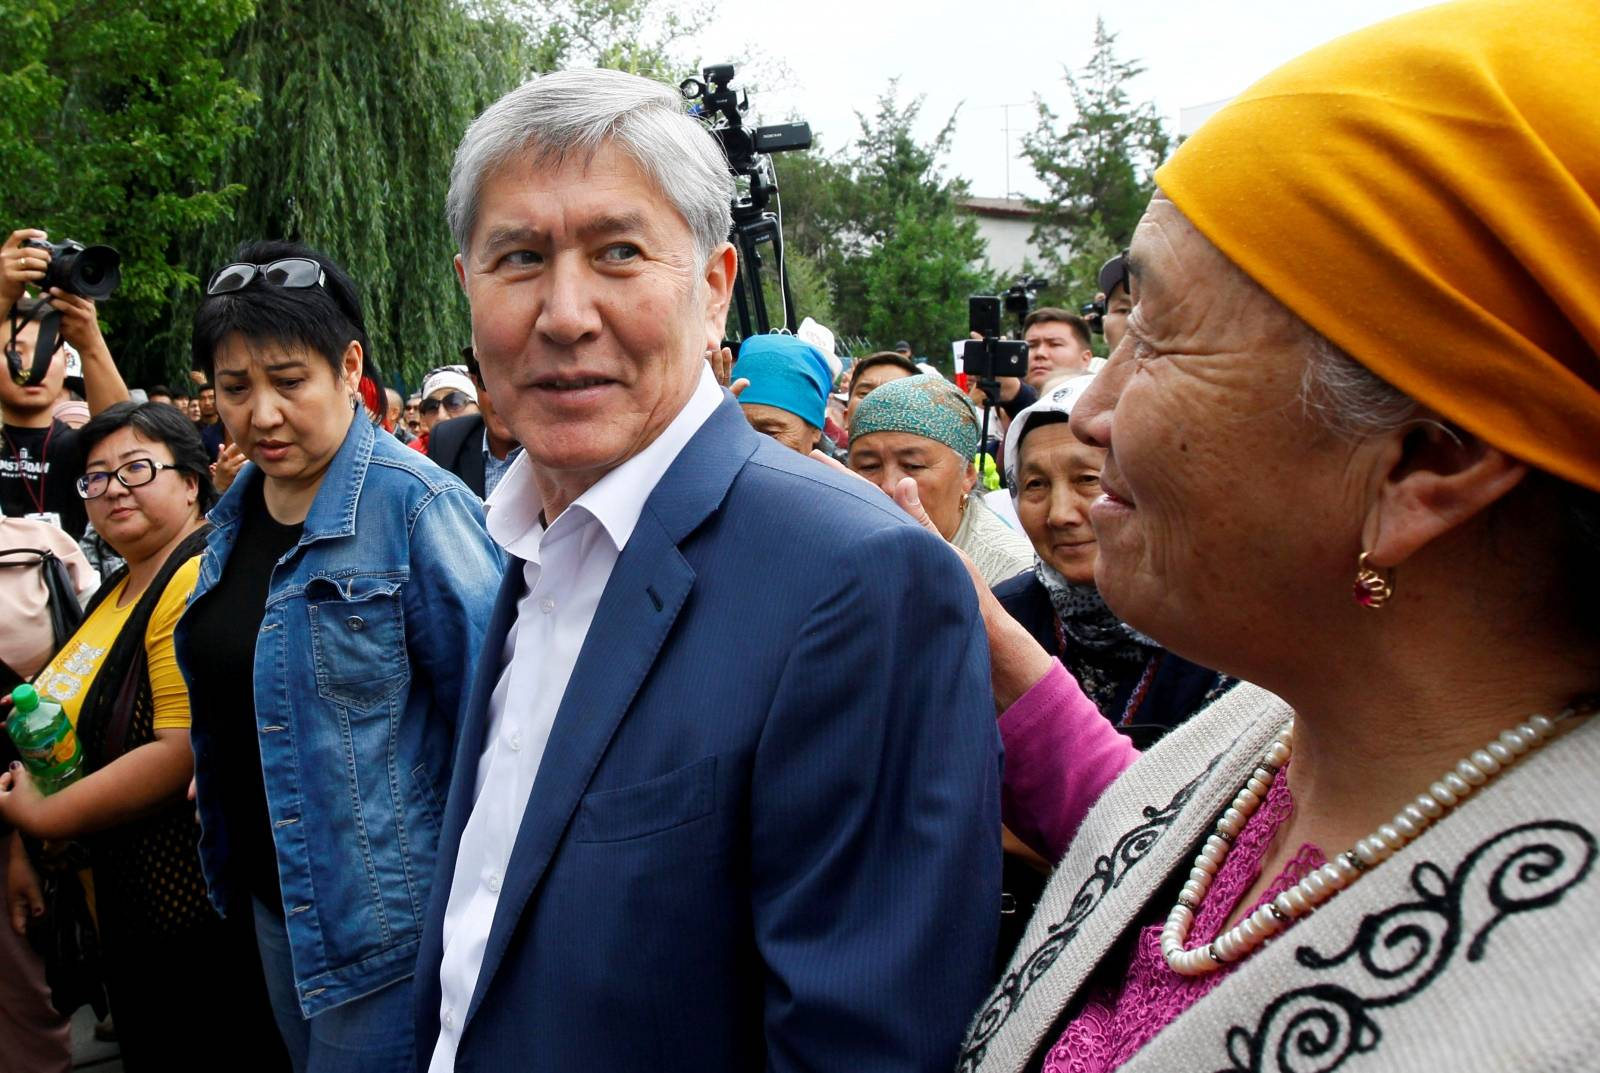 FILE PHOTO: Kyrgyz former President Atambayev, who was stripped of legal immunity after a parliamentary vote, and his supporters attend a rally in Bishkek